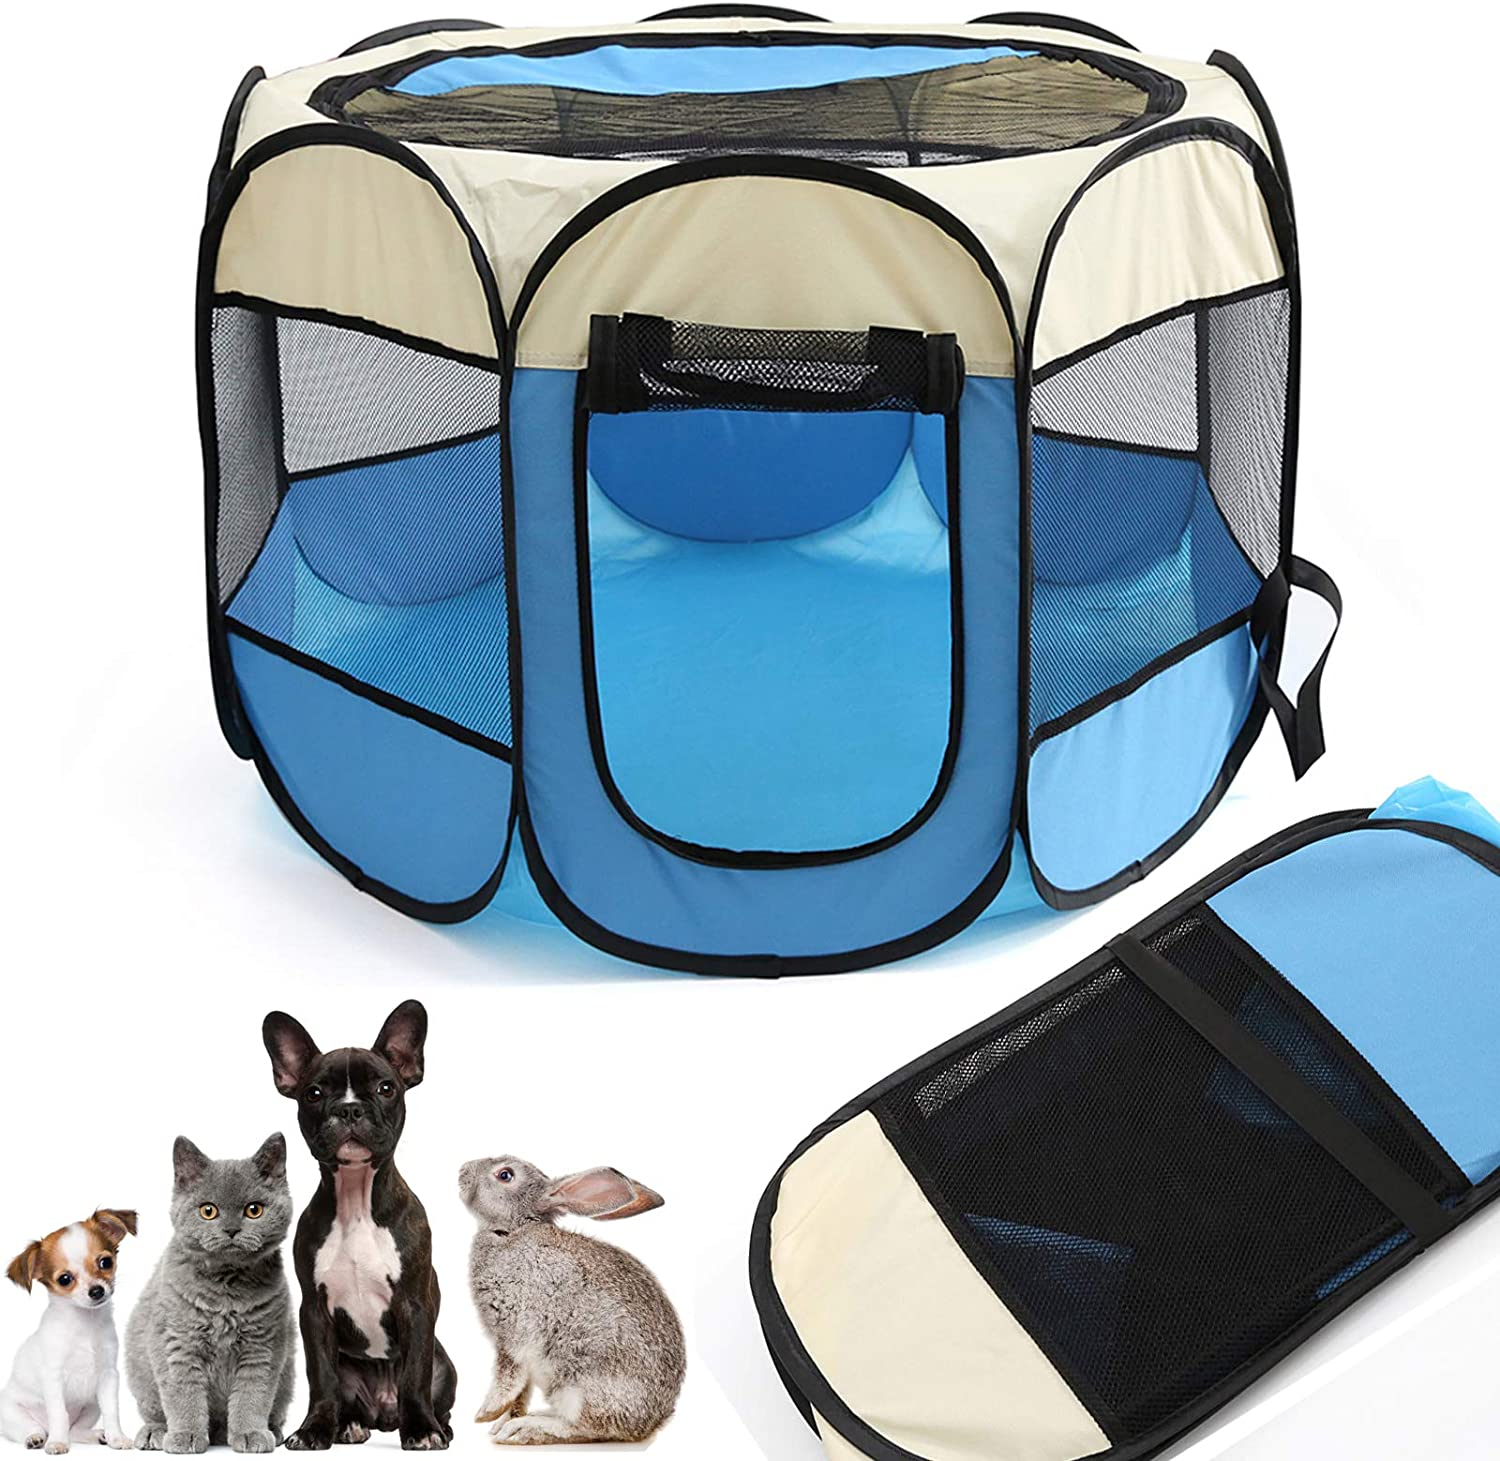 Portable Foldable Pet Manufacturer Dealing full price reduction regenerated product Playpen playpen cats 60 for Premium dogs